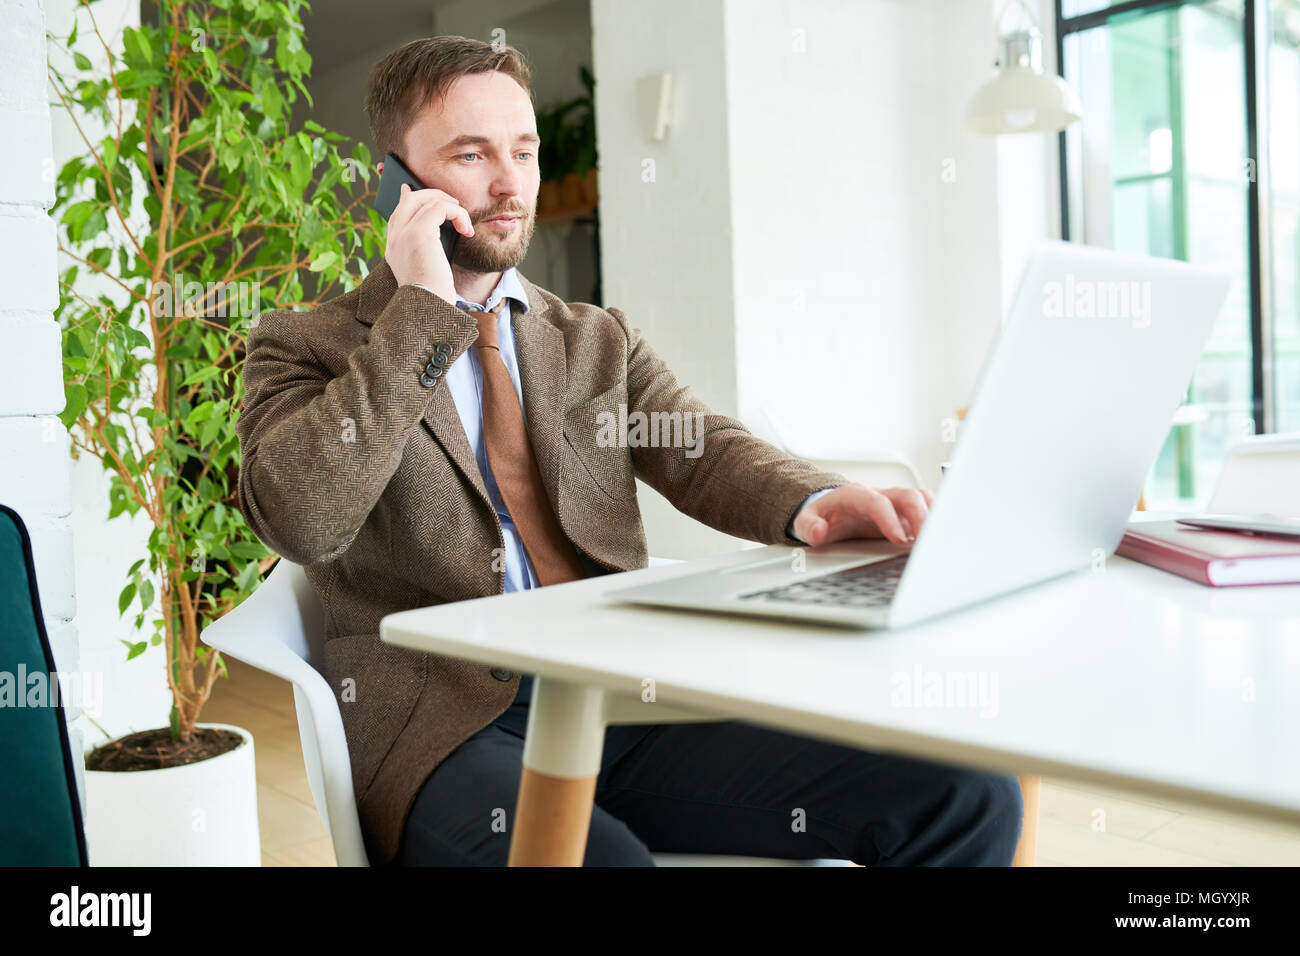 Successful Businessman Working in Cafe - Stock Image